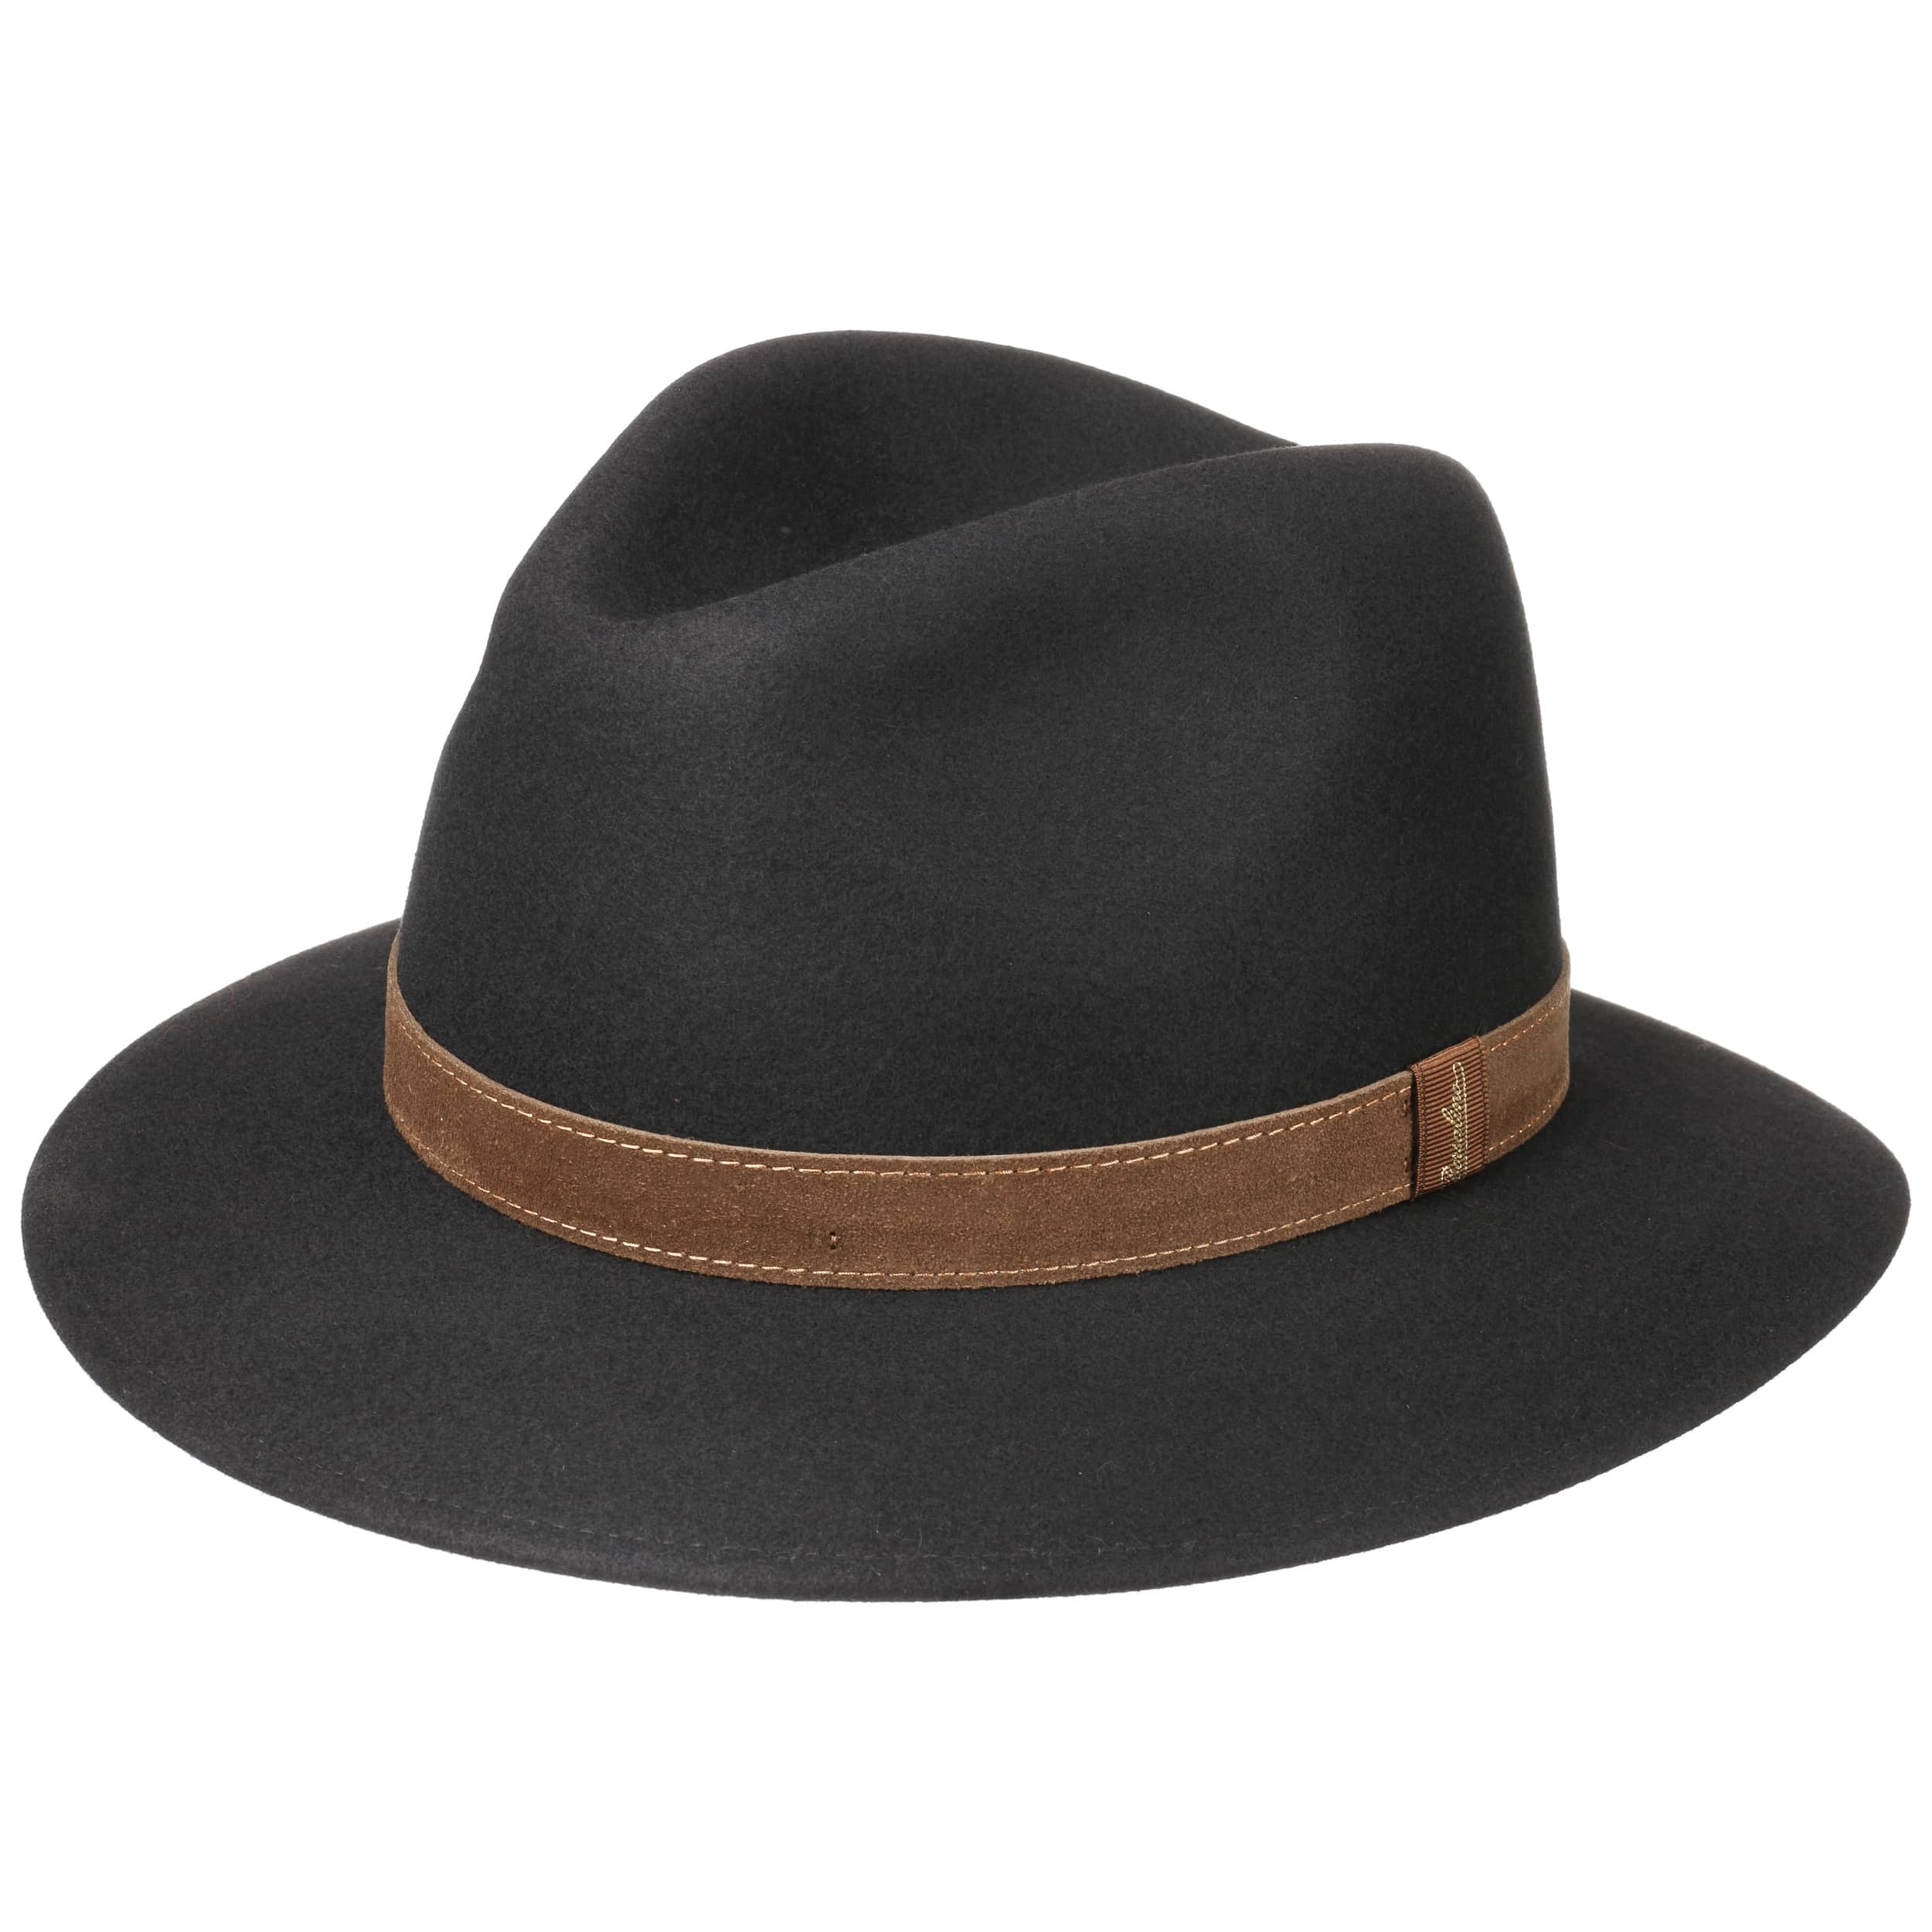 Borsalino Nero Pack Away Hut 299 00